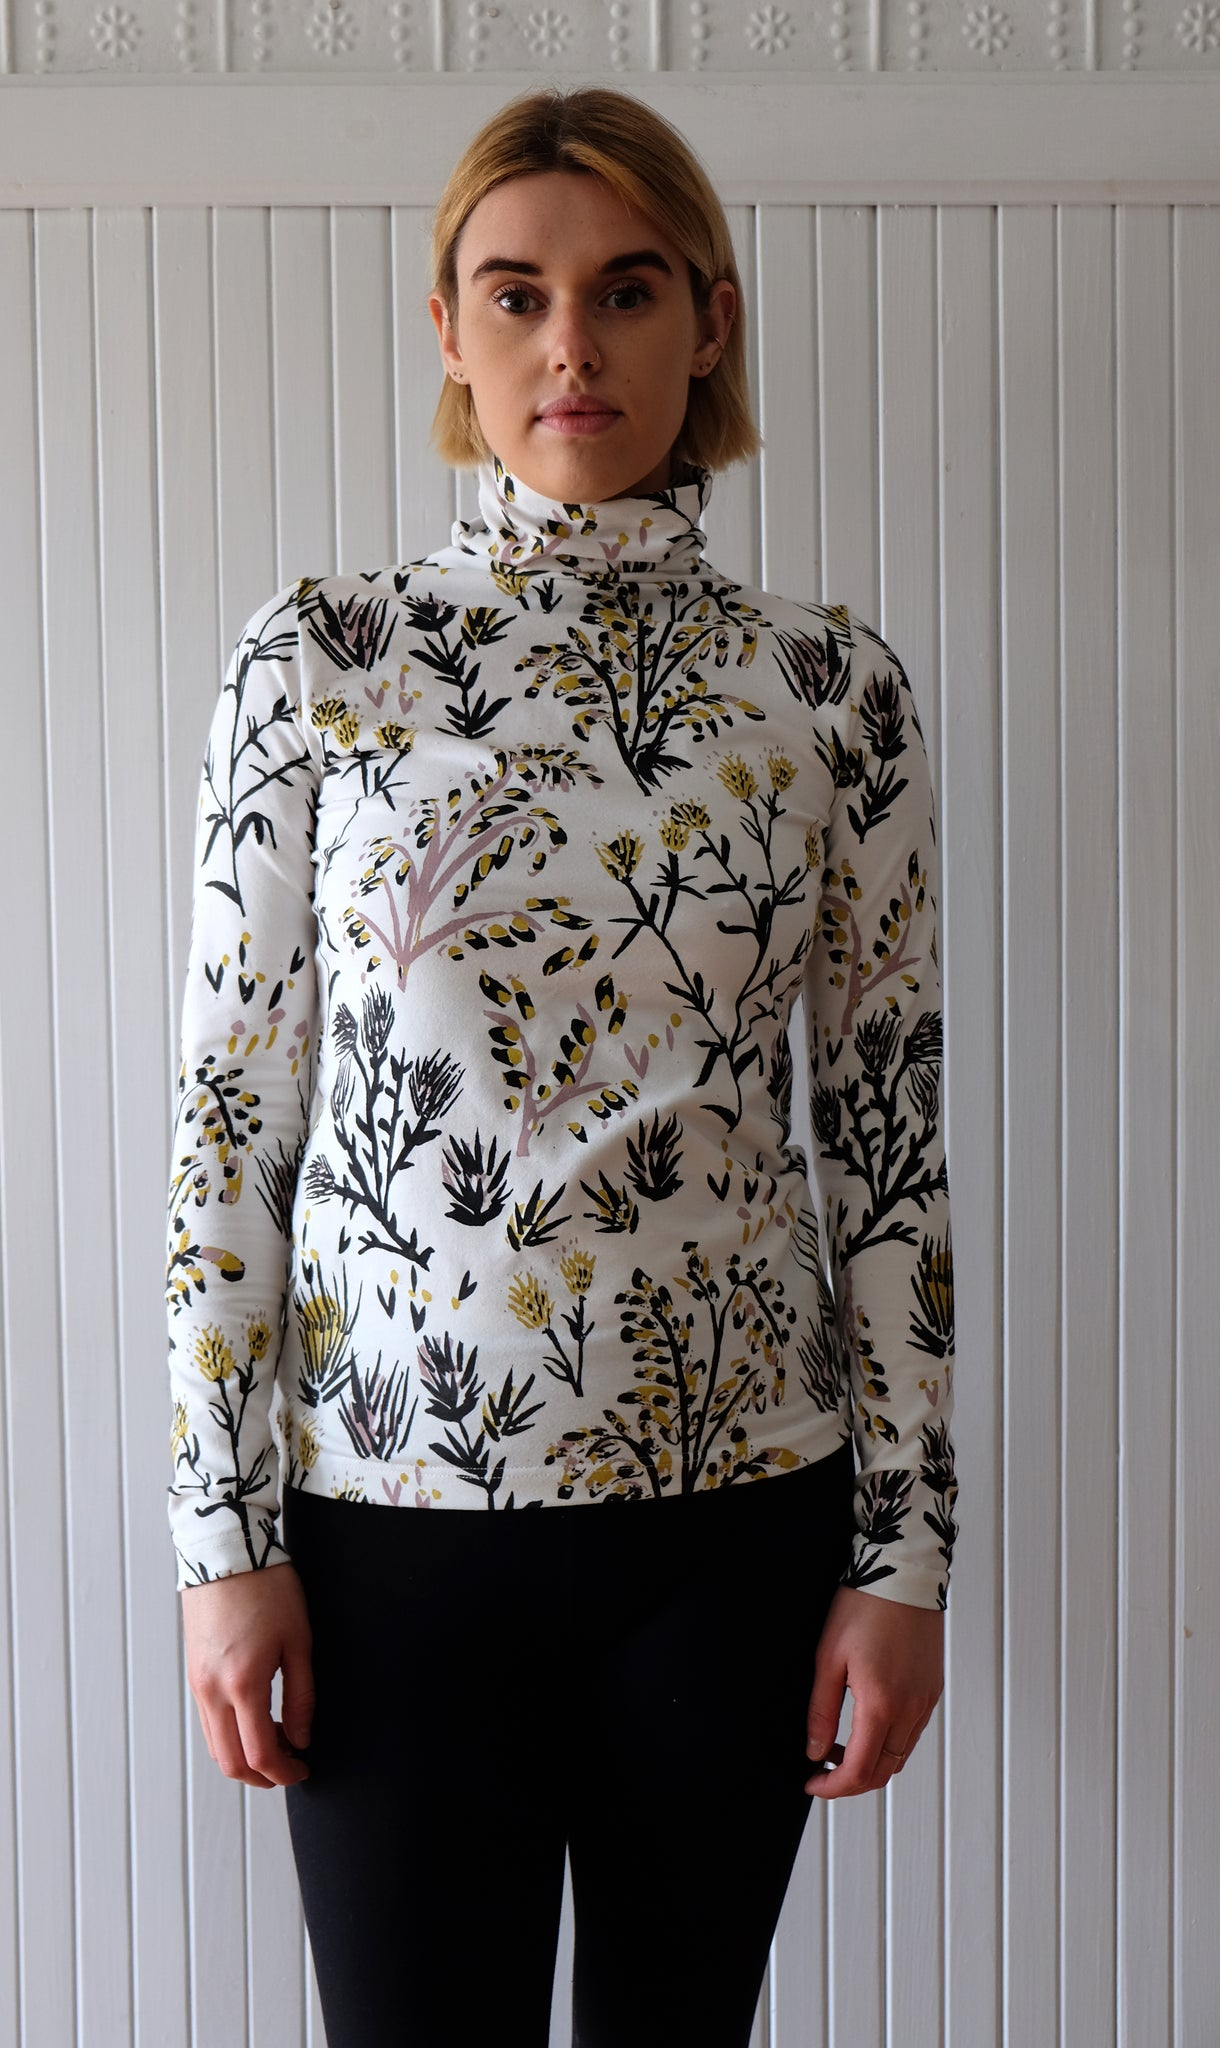 Thief&Bandit / Hand-painted Women's Turtleneck